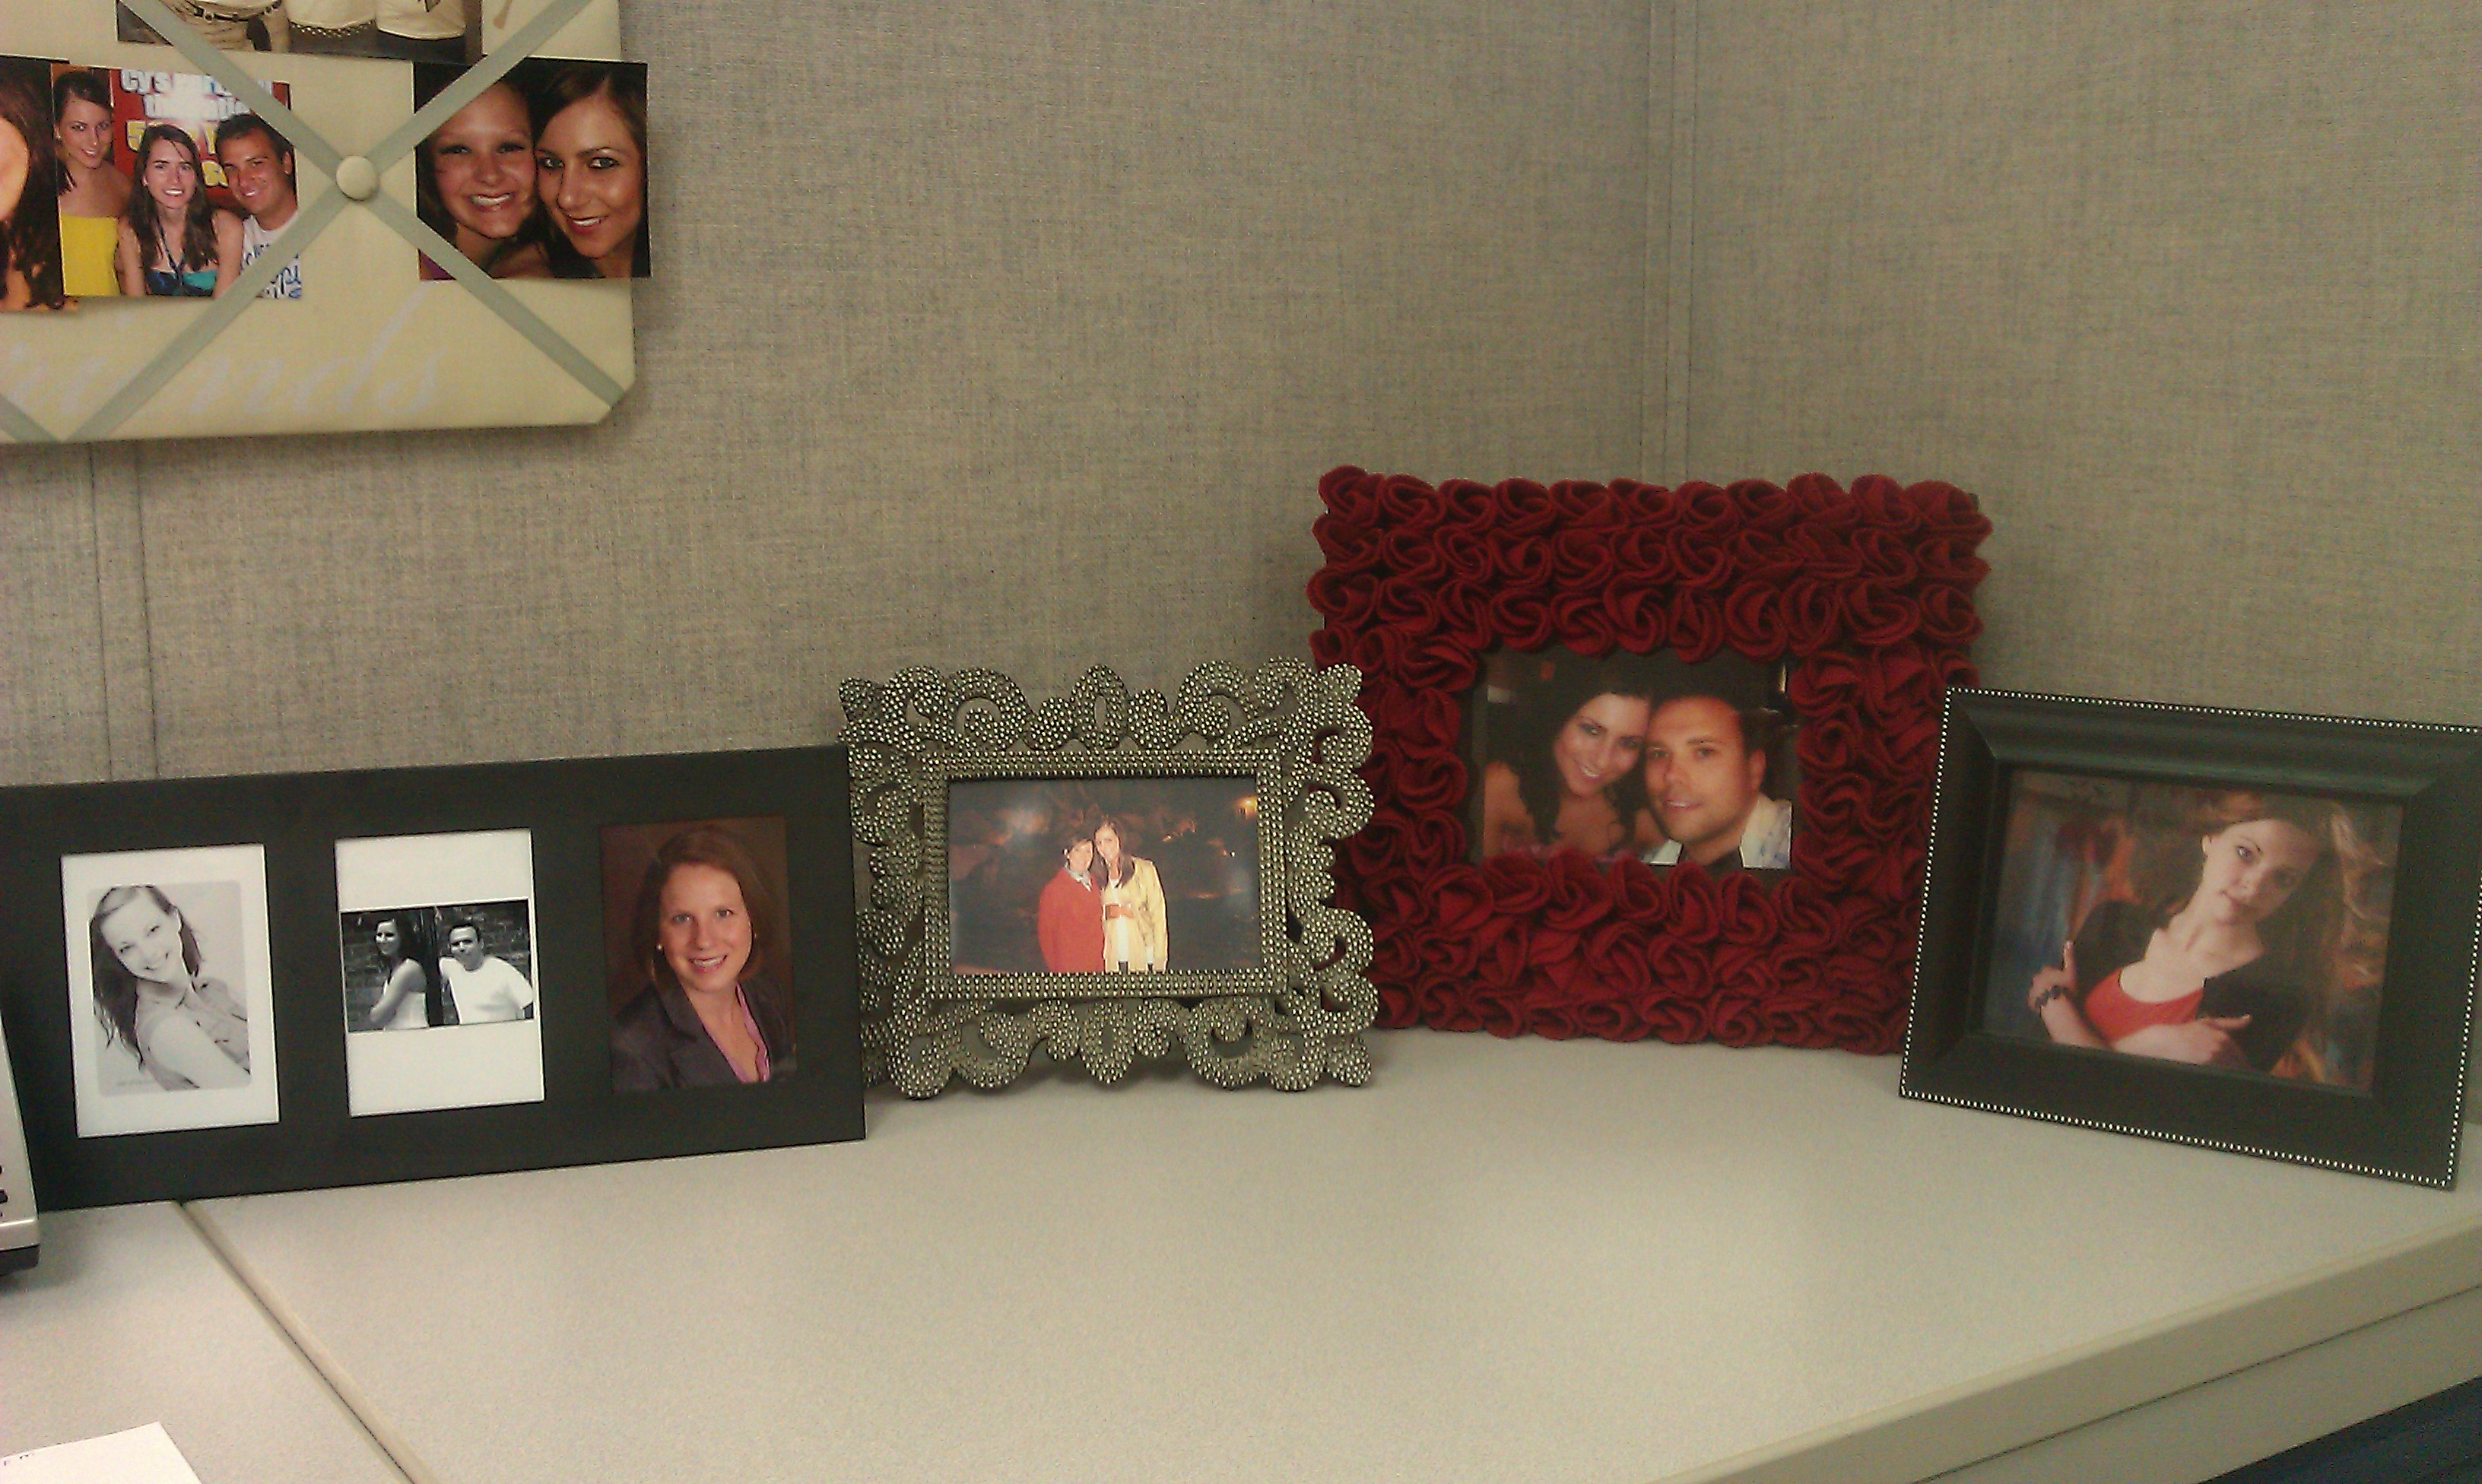 some pretty picture frames add the perfect touch to my cubicle